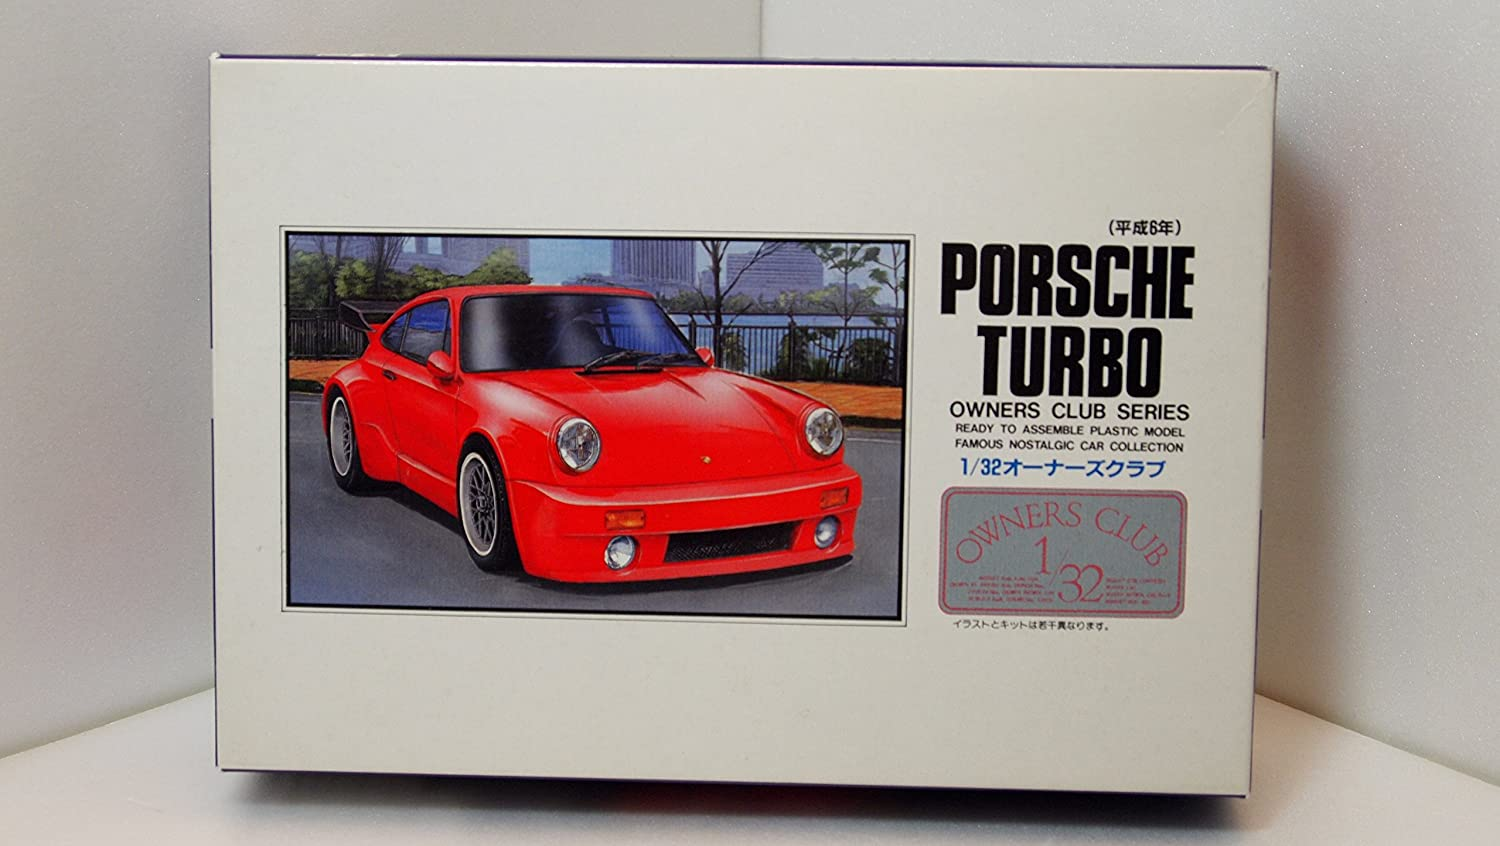 1/32 `94 Porsche 911 Turbo (Model Car) Micro Ace(Arii) Owners Club|No.34 (japan import): Amazon.es: Juguetes y juegos